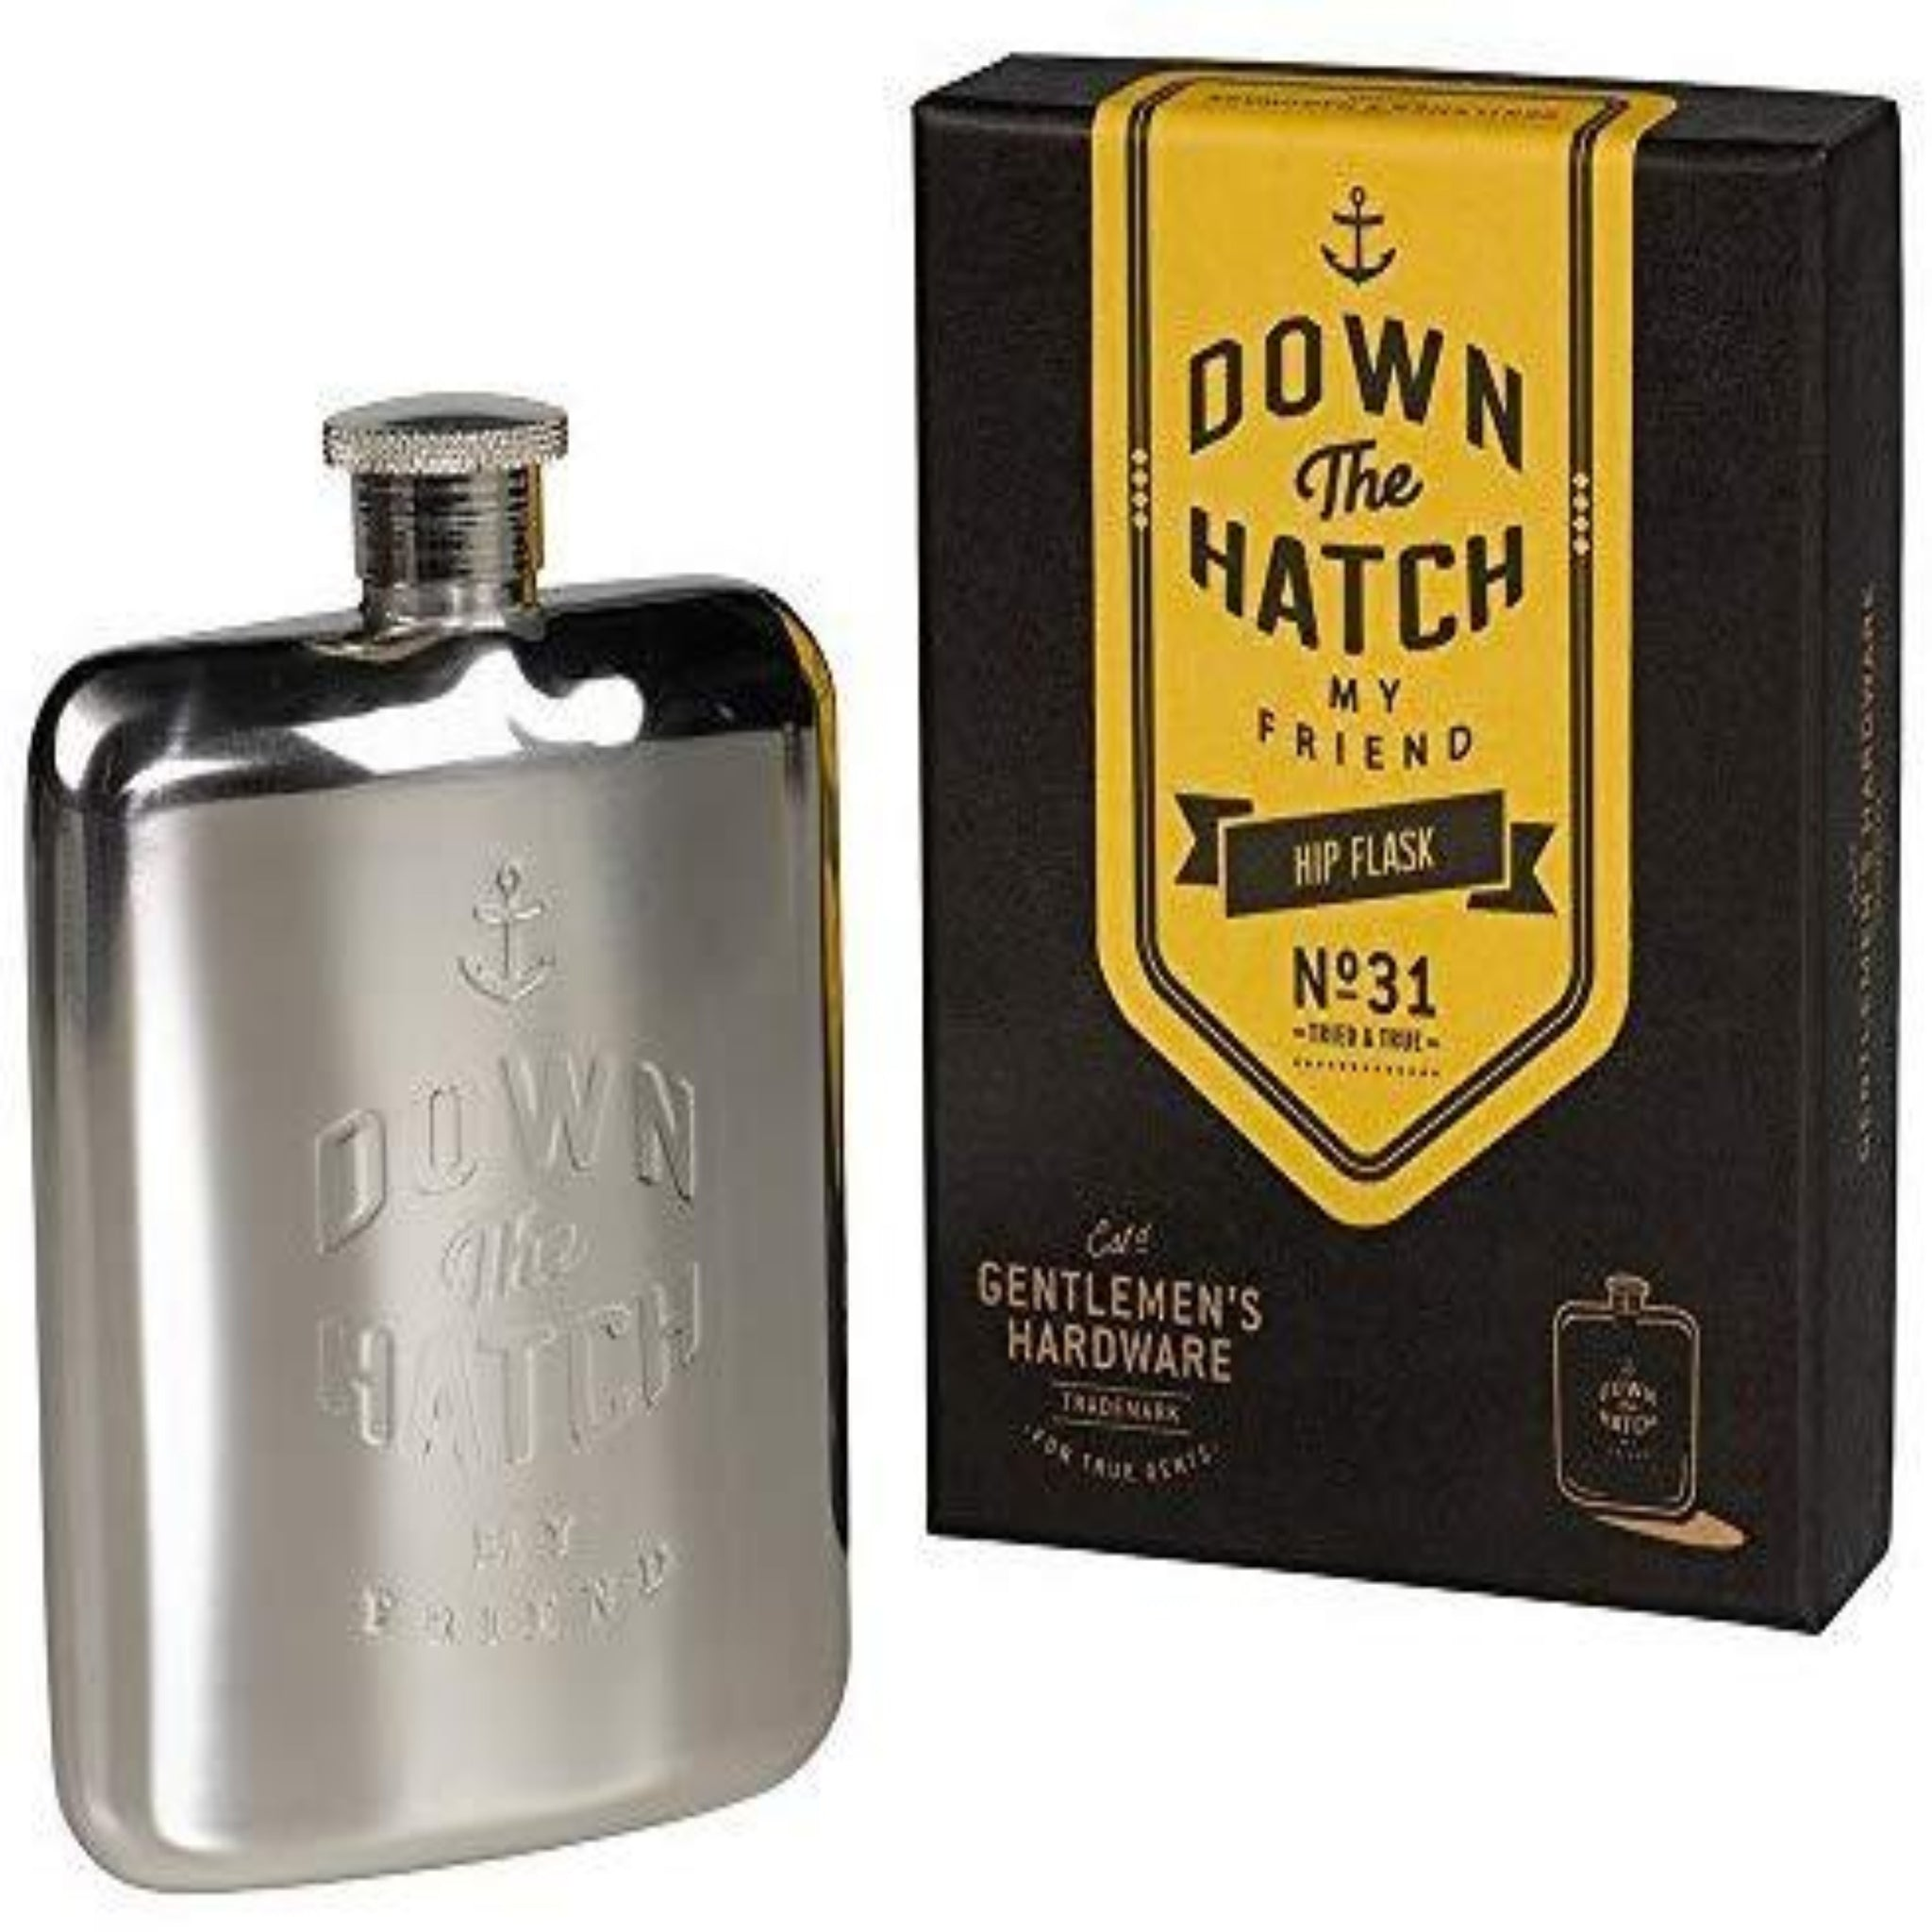 GENTLEMEN'S HARDWARE - DOWN THE HATCH HIP FLASK 6OZ